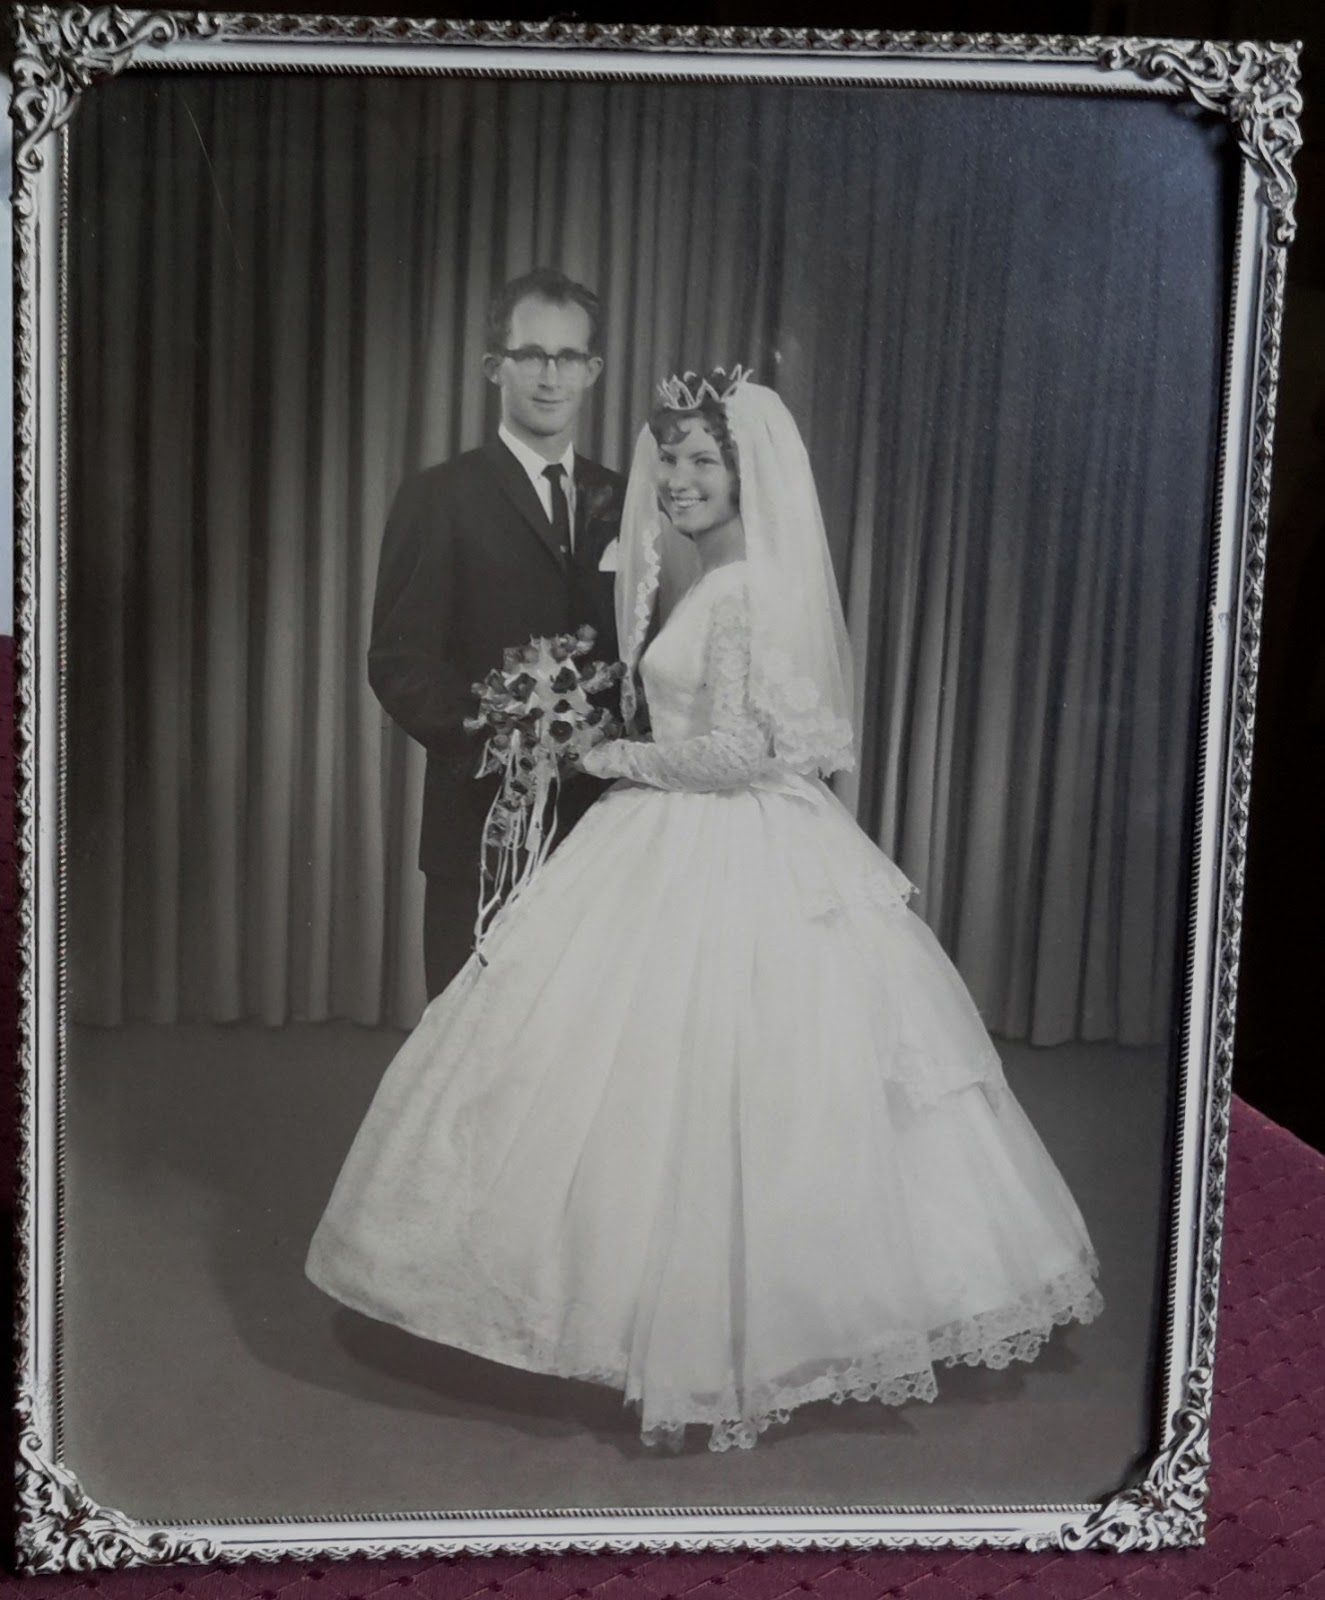 Pearls in a Nutshell: Down Memory Lane on our 50th Wedding Anniversary